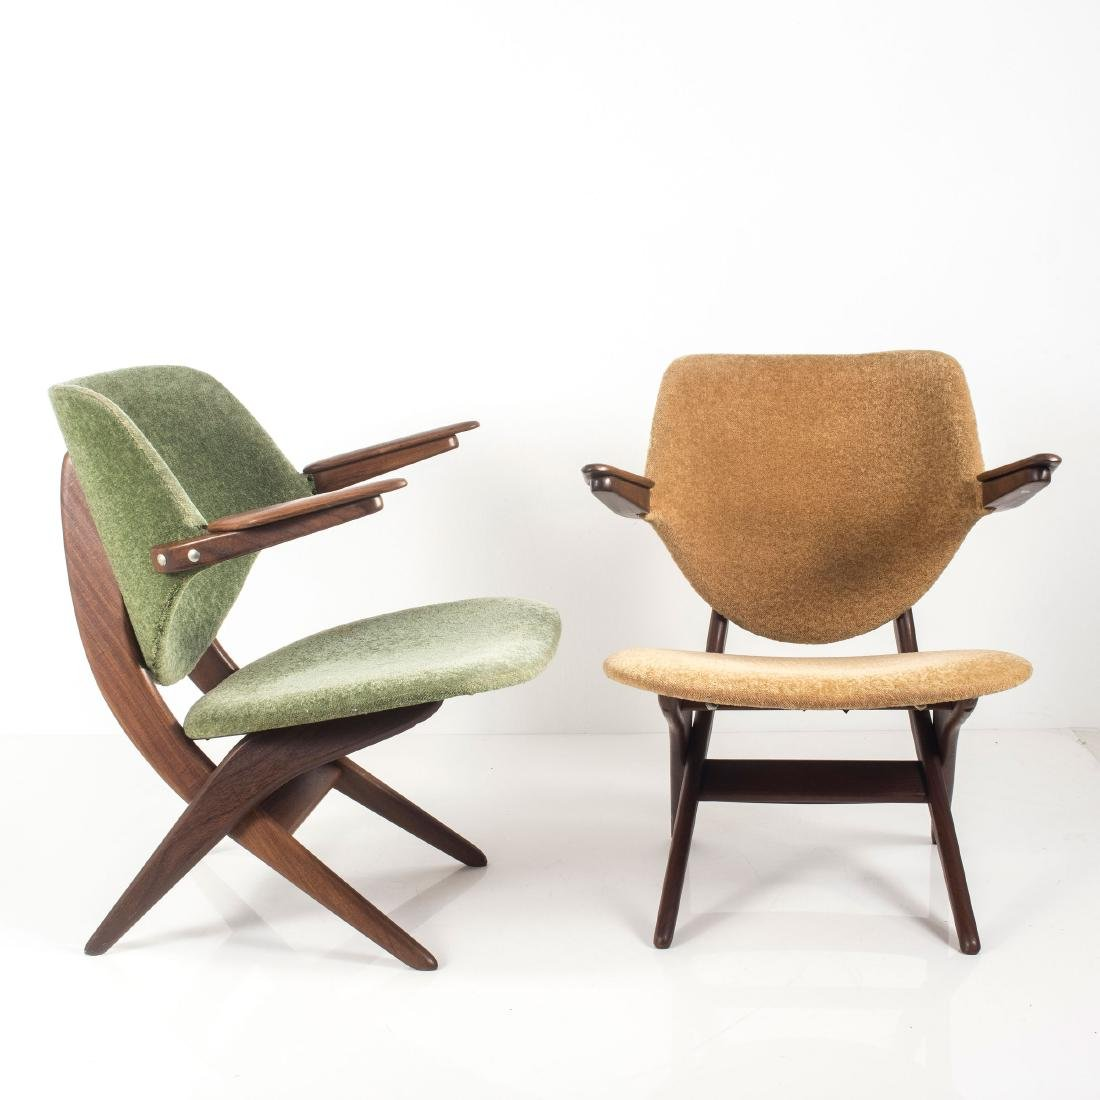 Two 'Pelican' easy chairs, c. 1955 - 6